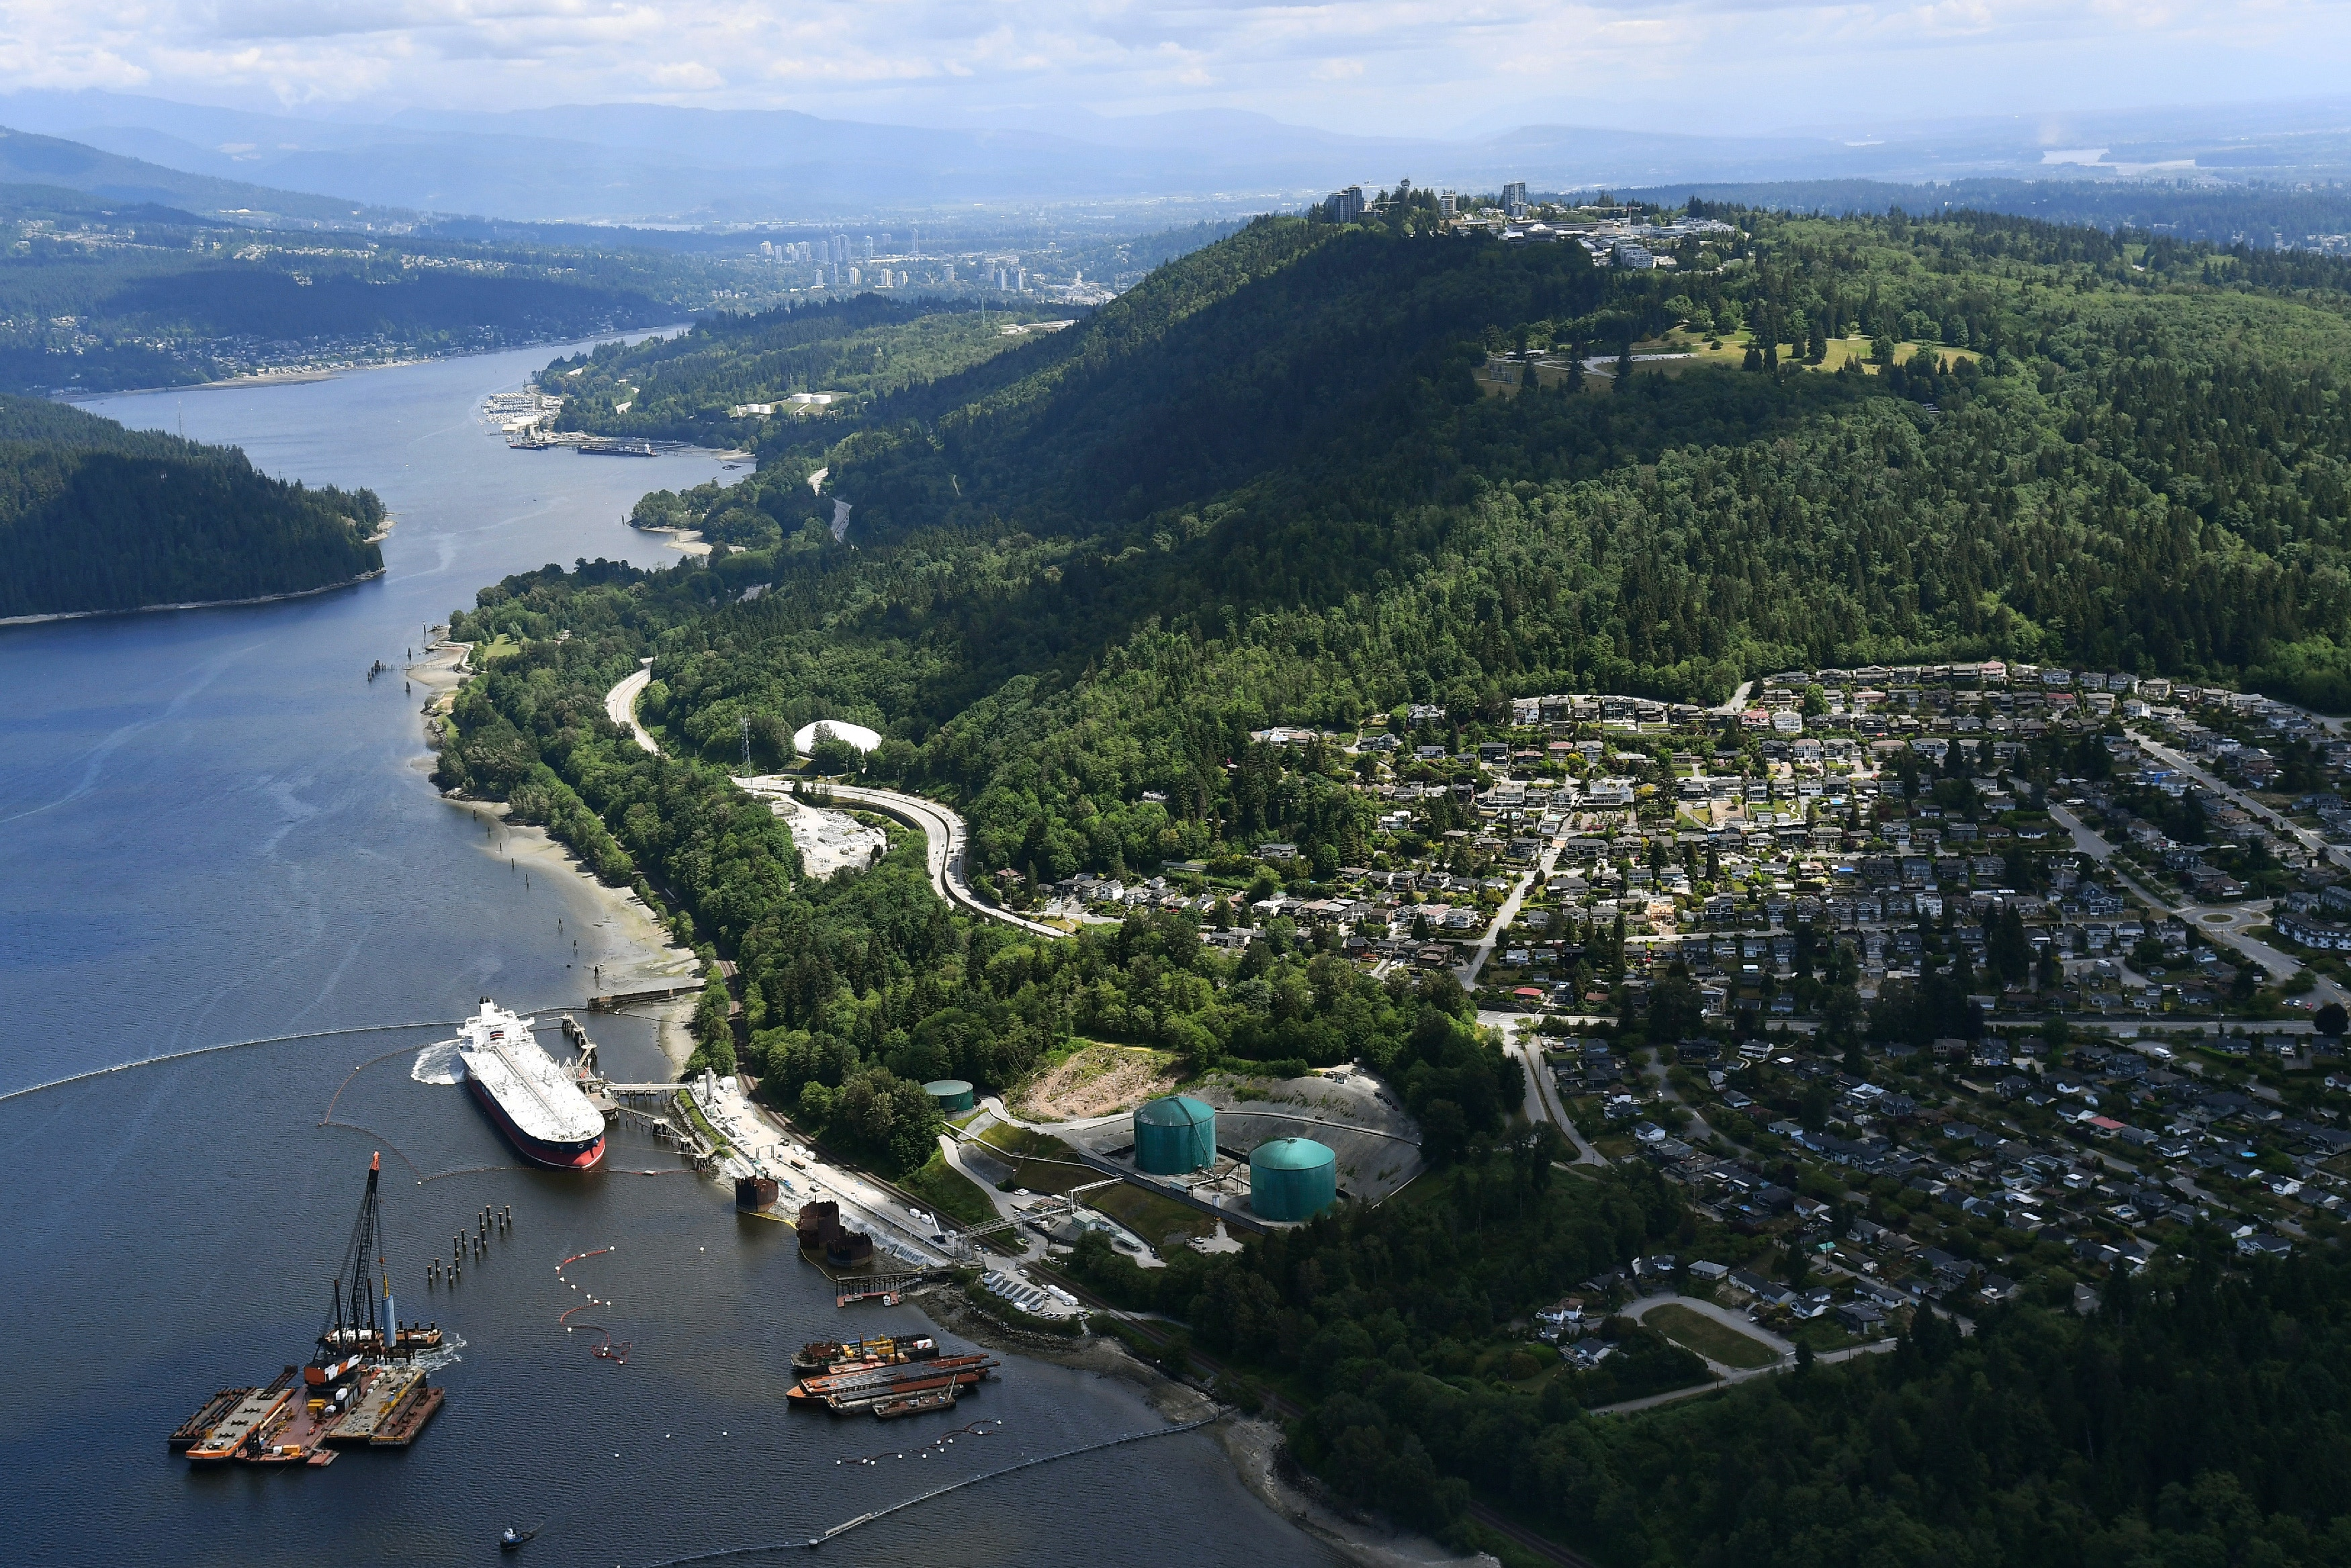 A aerial view of Kinder Morgan's Trans Mountain marine terminal, in Burnaby, British Columbia, is shown on Tuesday, May 29, 2018. The federal Liberal government is spending $ 4.5 billion to buy Trans Mountain and all of Kinder Morgan Canada's core assets, Finance Minister Bill Morneau said Tuesday as he unveiled the government's long-awaited, big-budget strategy to save the plan to expand the oil pipeline. (Jonathan Hayward/The Canadian Press via AP)